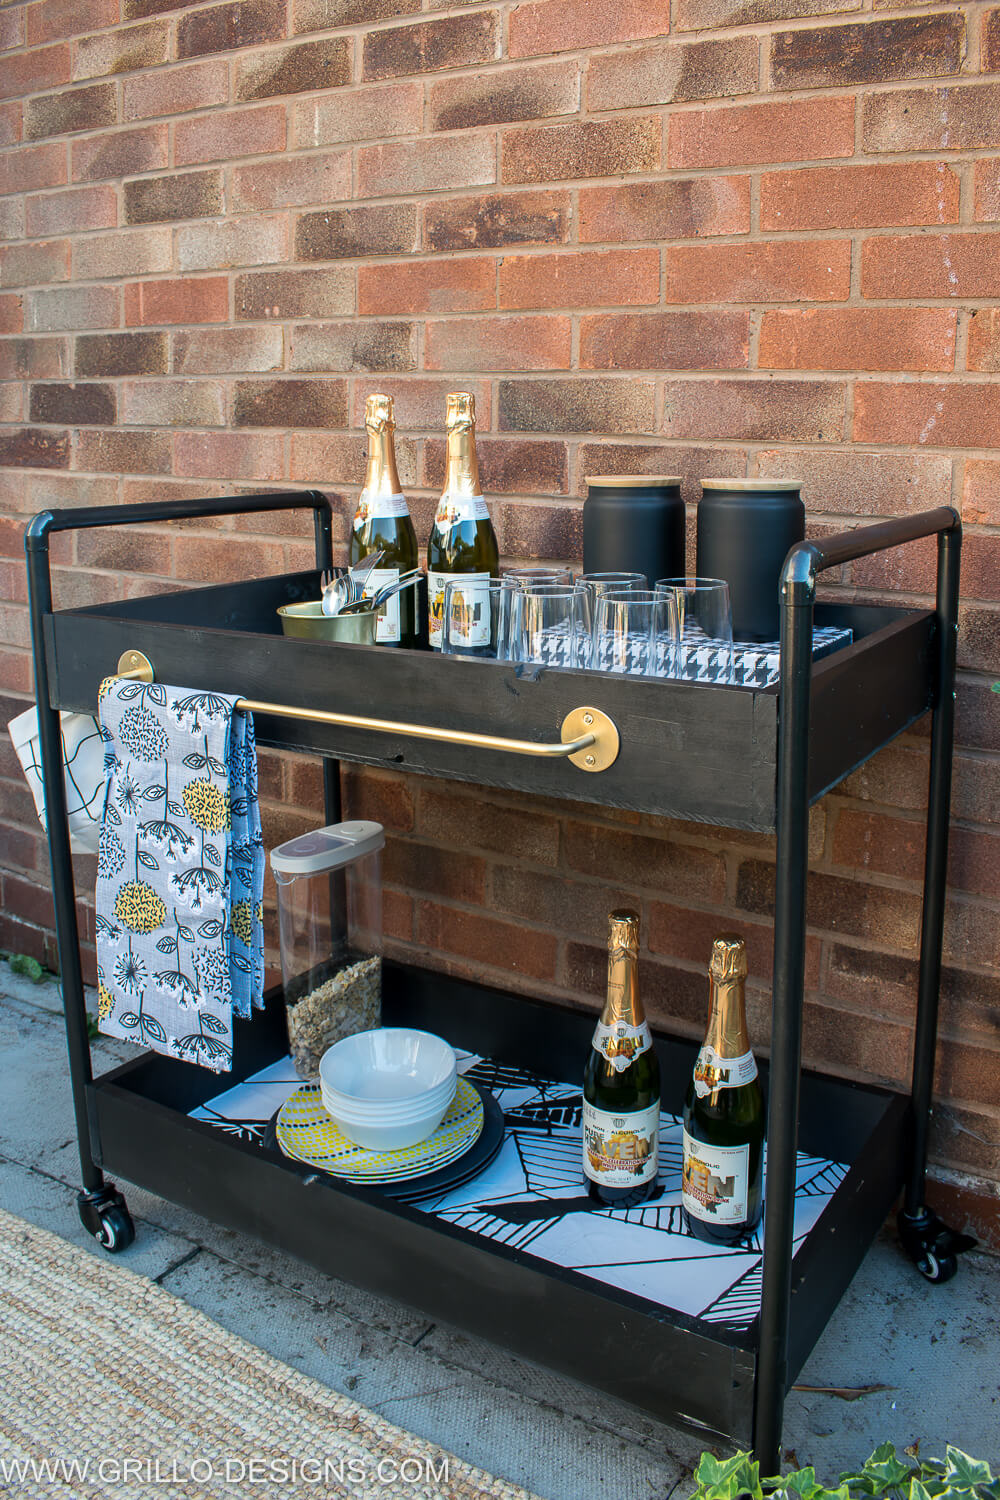 How to build an outdoor rolling bar cart / grillo designs